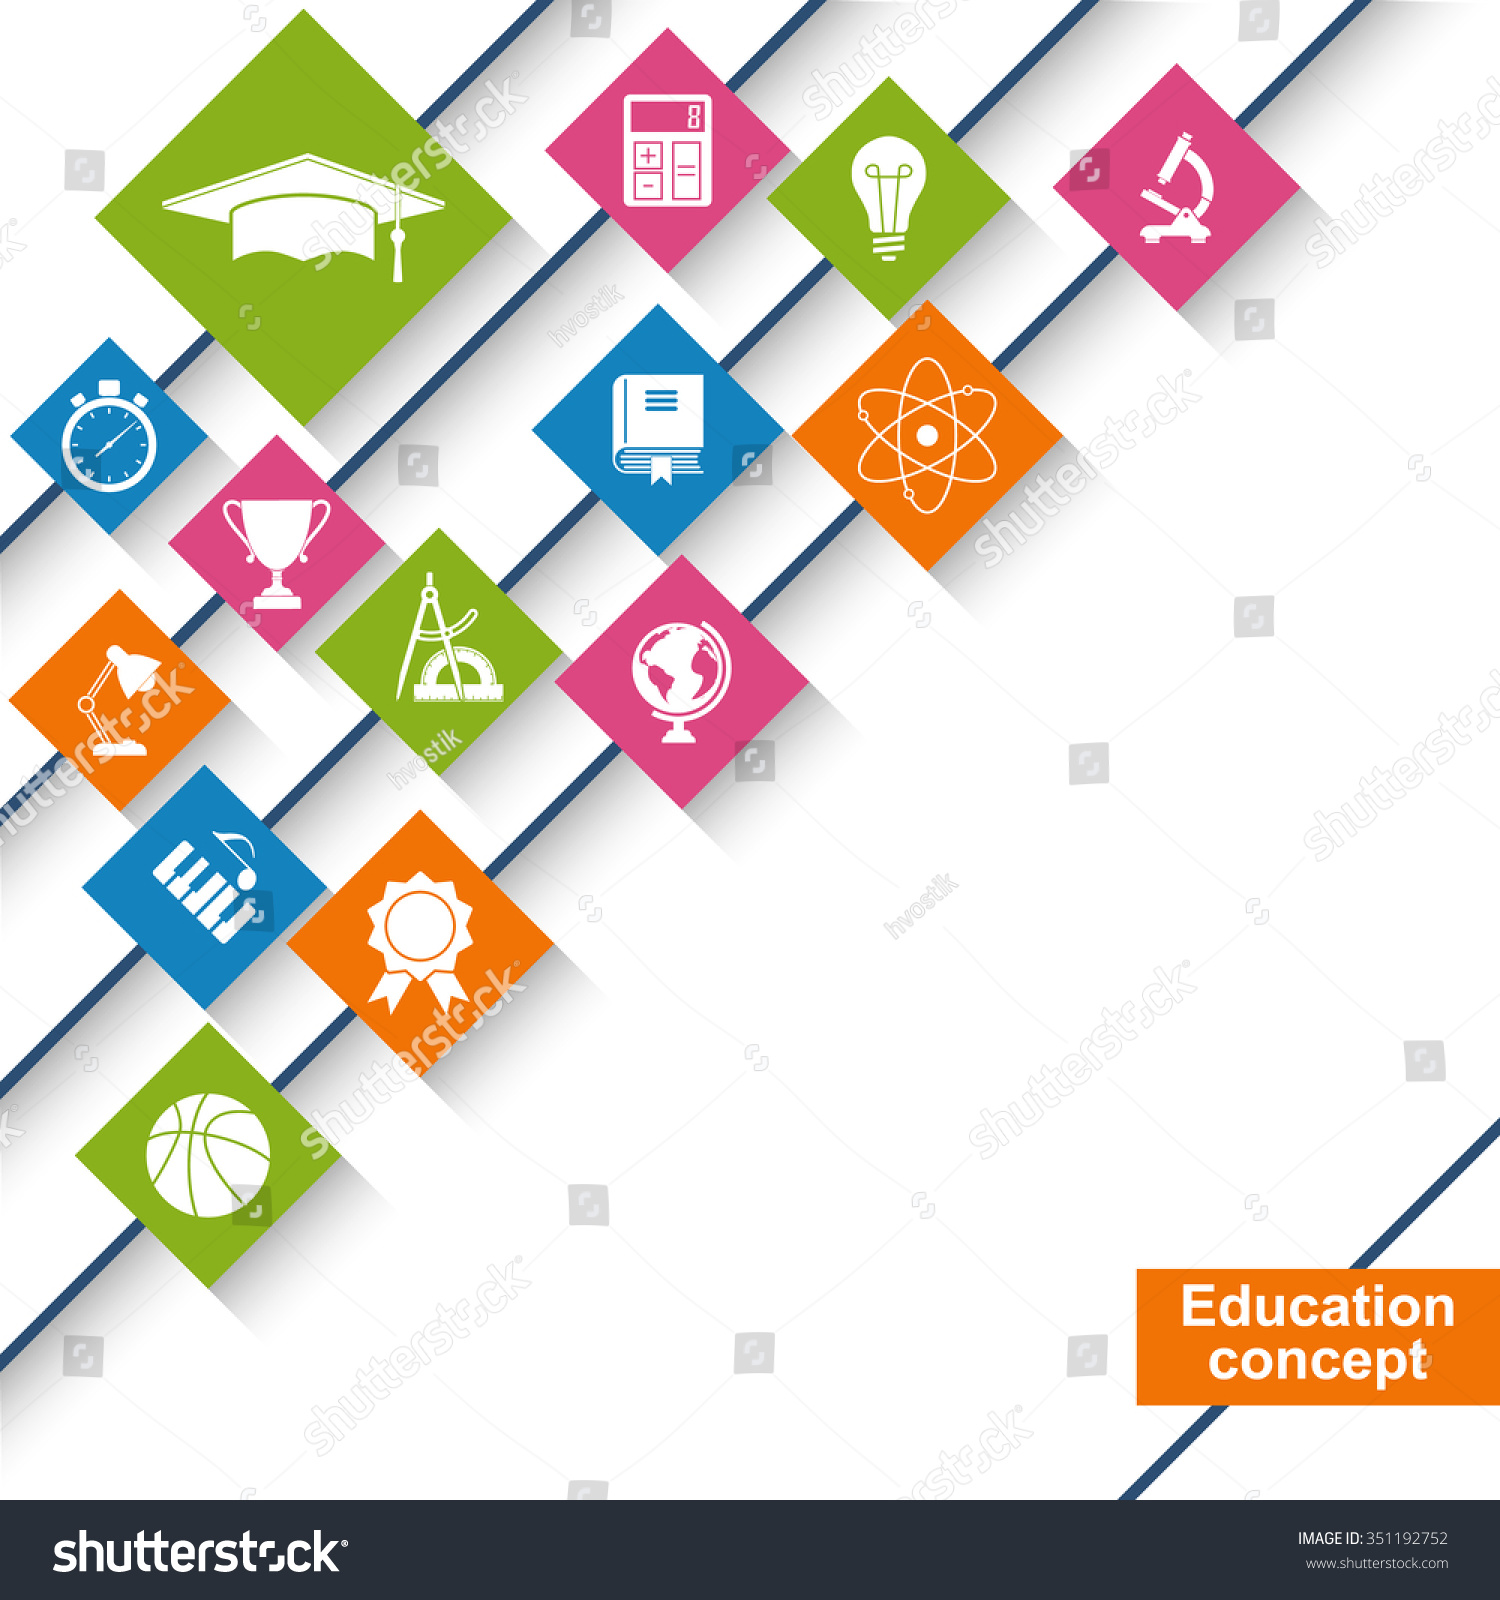 stock-vector-education-and-science-concept-abstract-education-background-with-icons-and-signs-vector-351192752.jpg